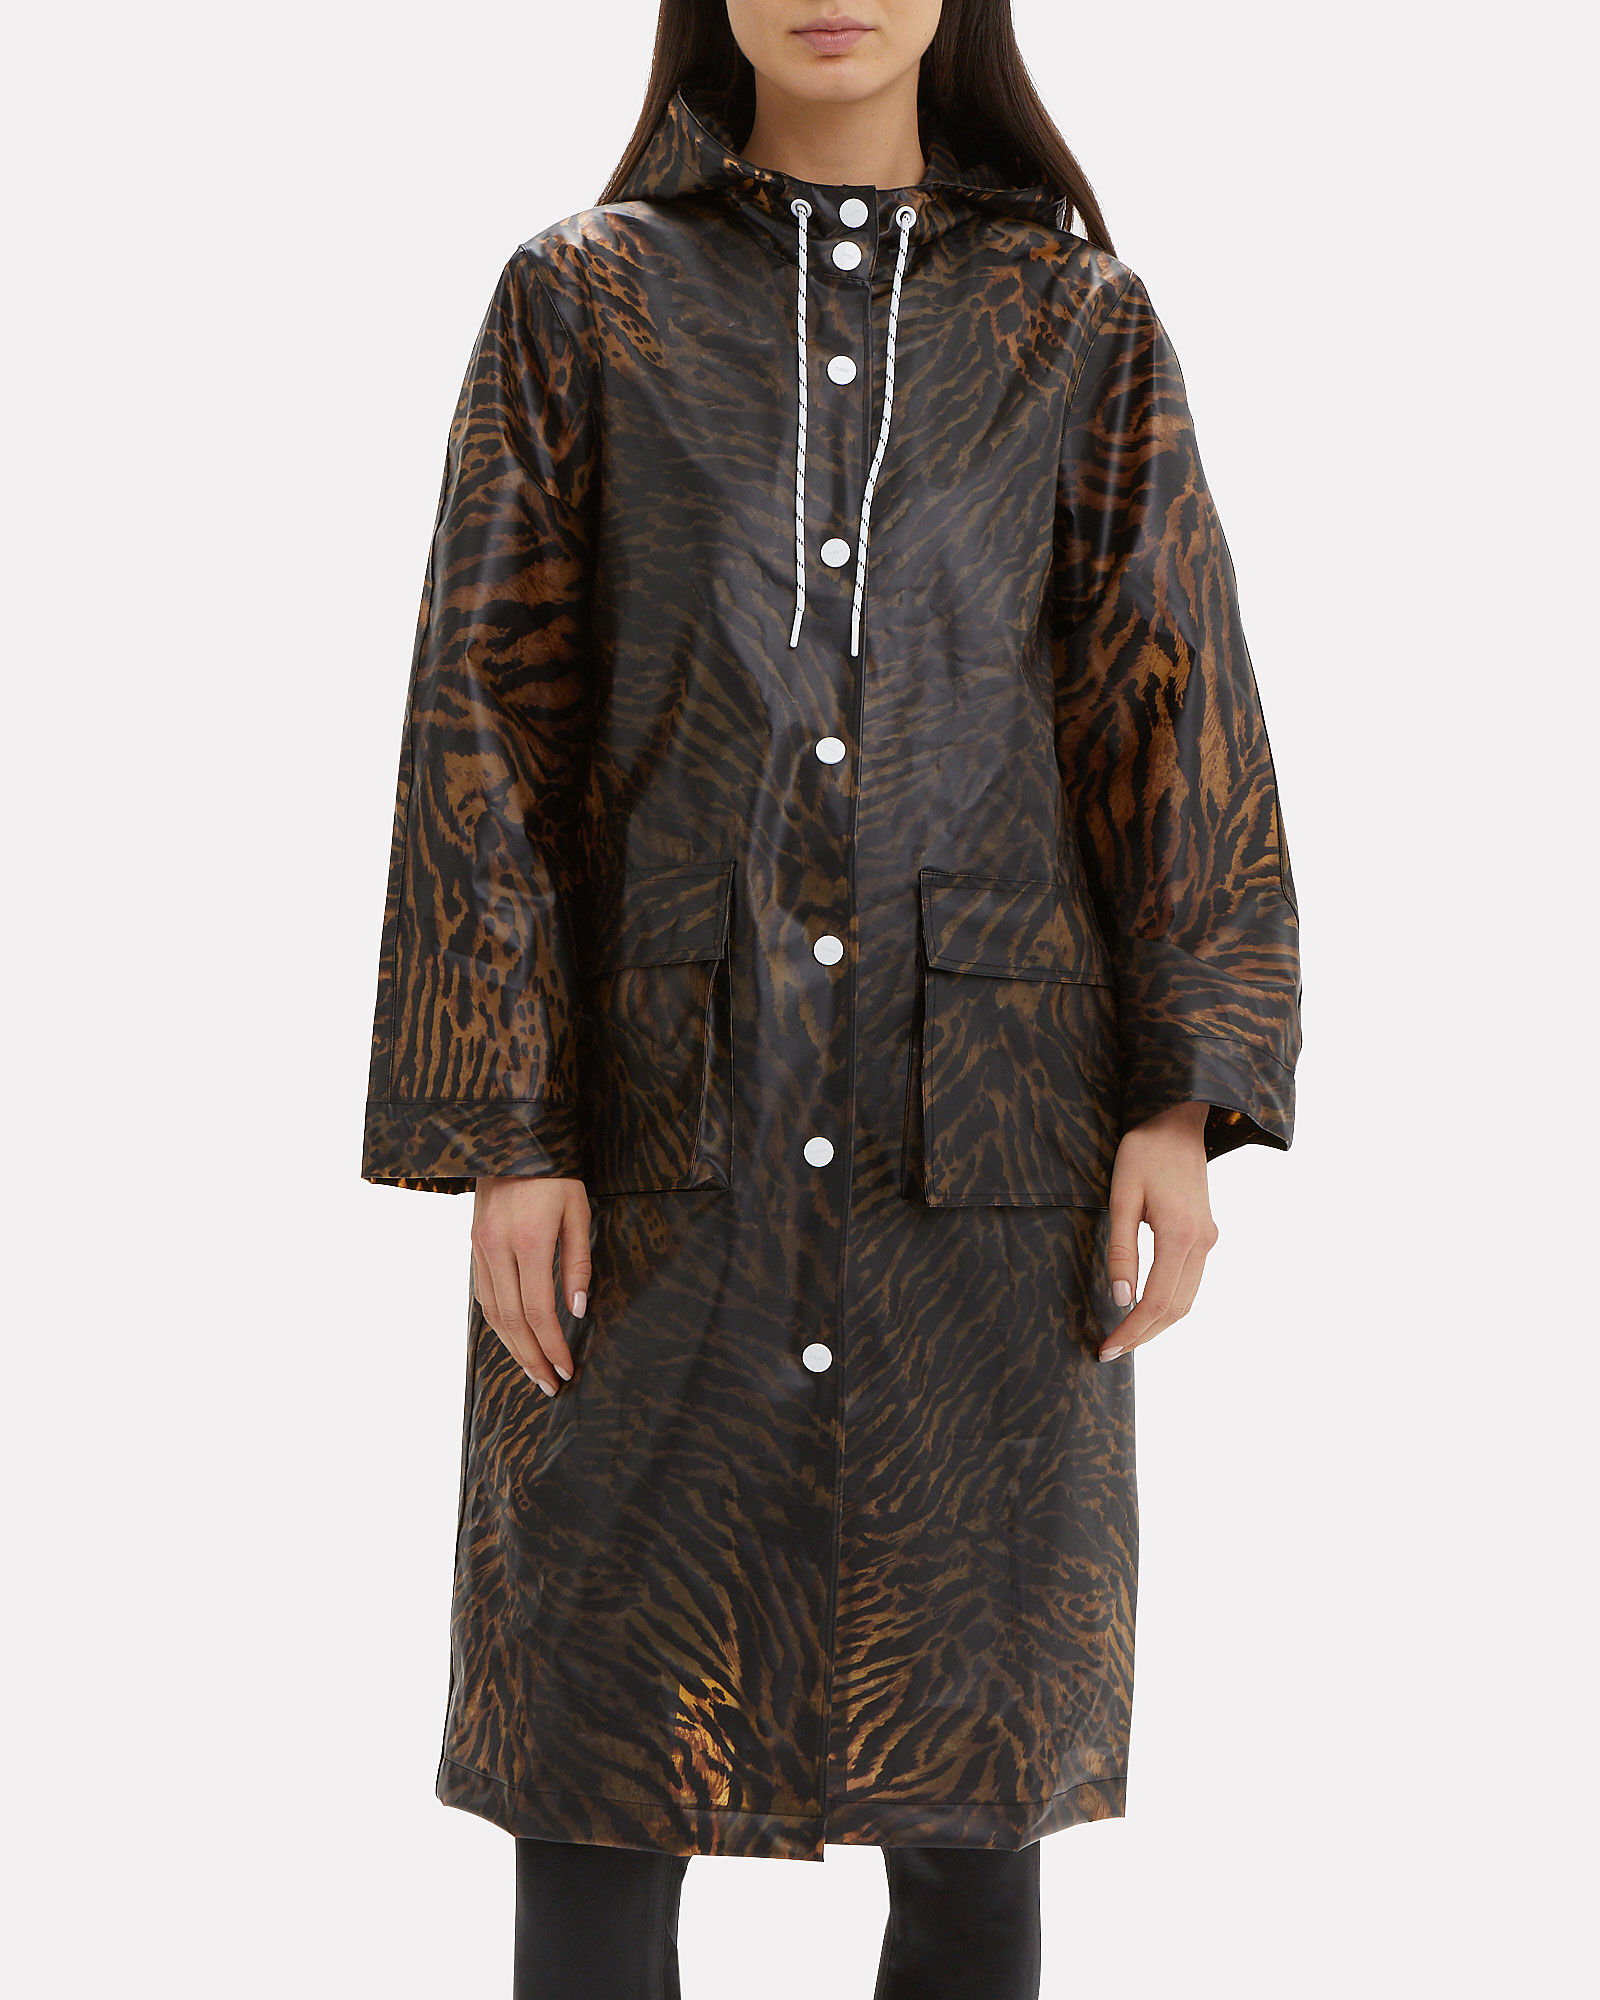 Tiger Print Rain Jacket, BROWN, hi-res